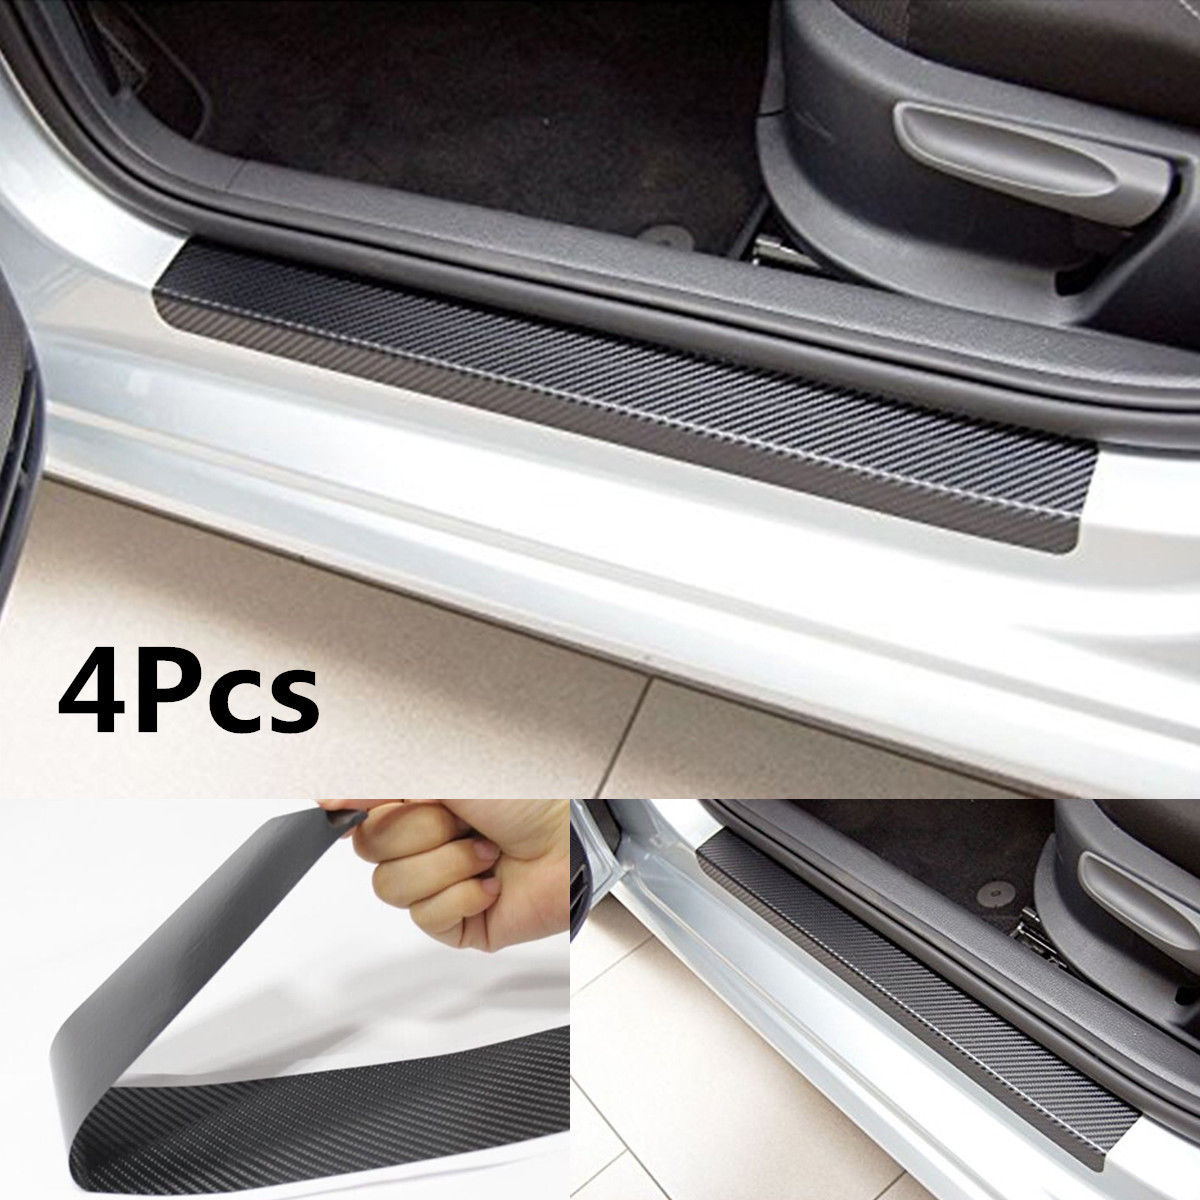 4Psc Universal Black Car Door Plate Sill Scuff Cover Anti Scratch Sticker Carbon Fiber Look Protective Sticker